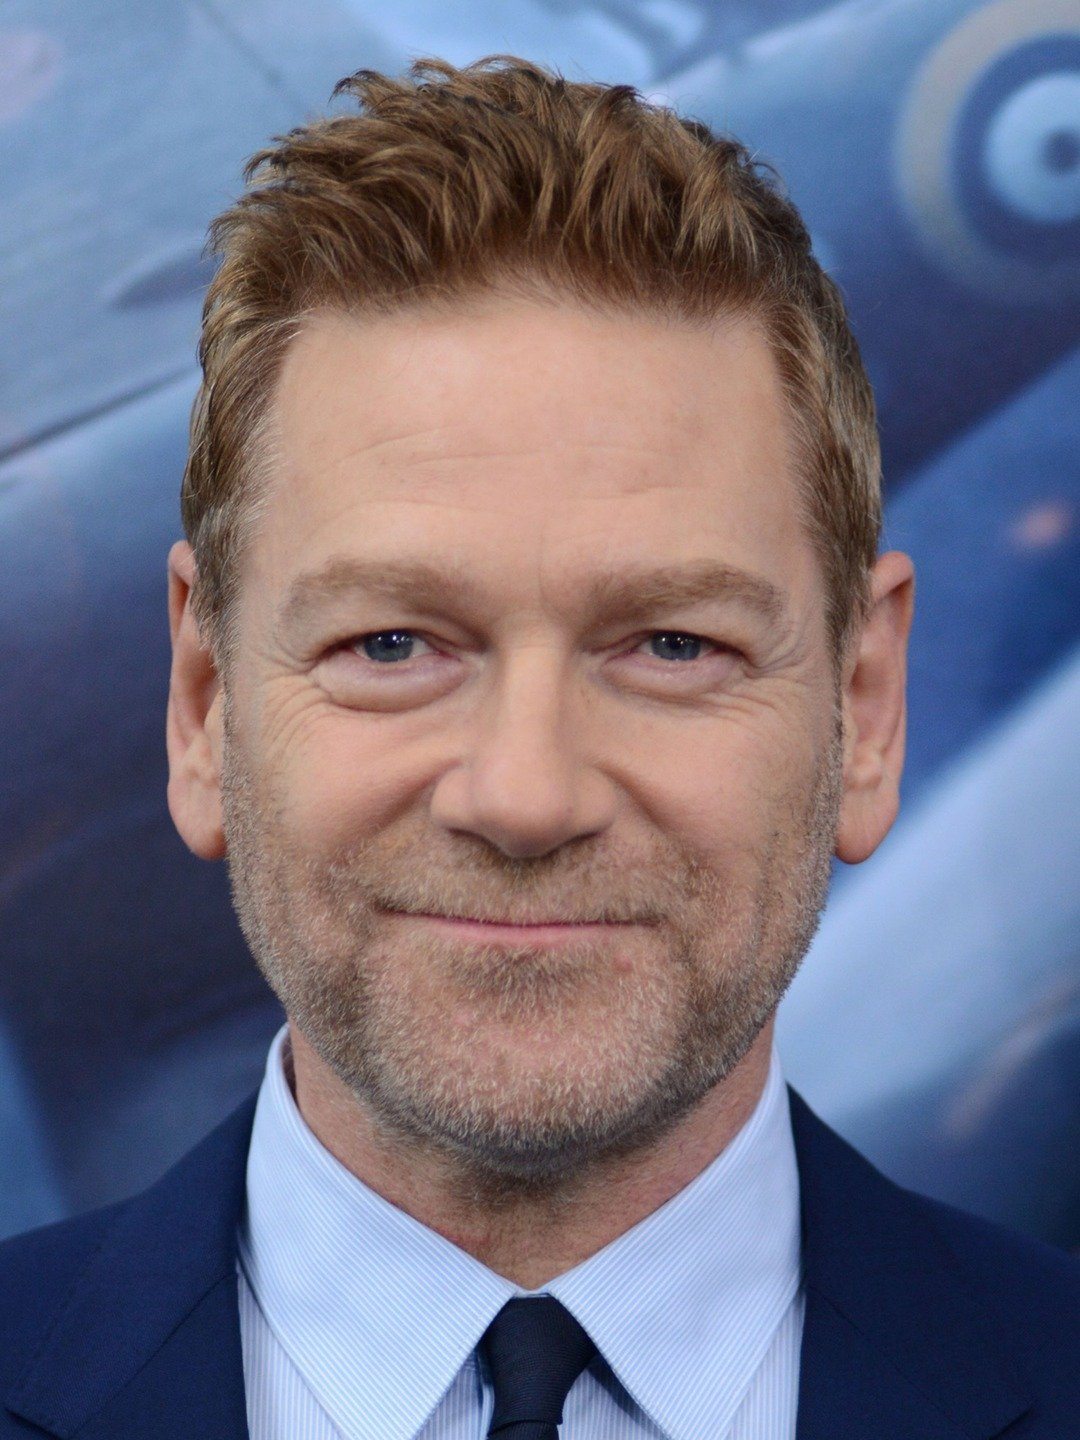 Kenneth Branagh to play UK PM Boris Johnson in series about Covid crisis